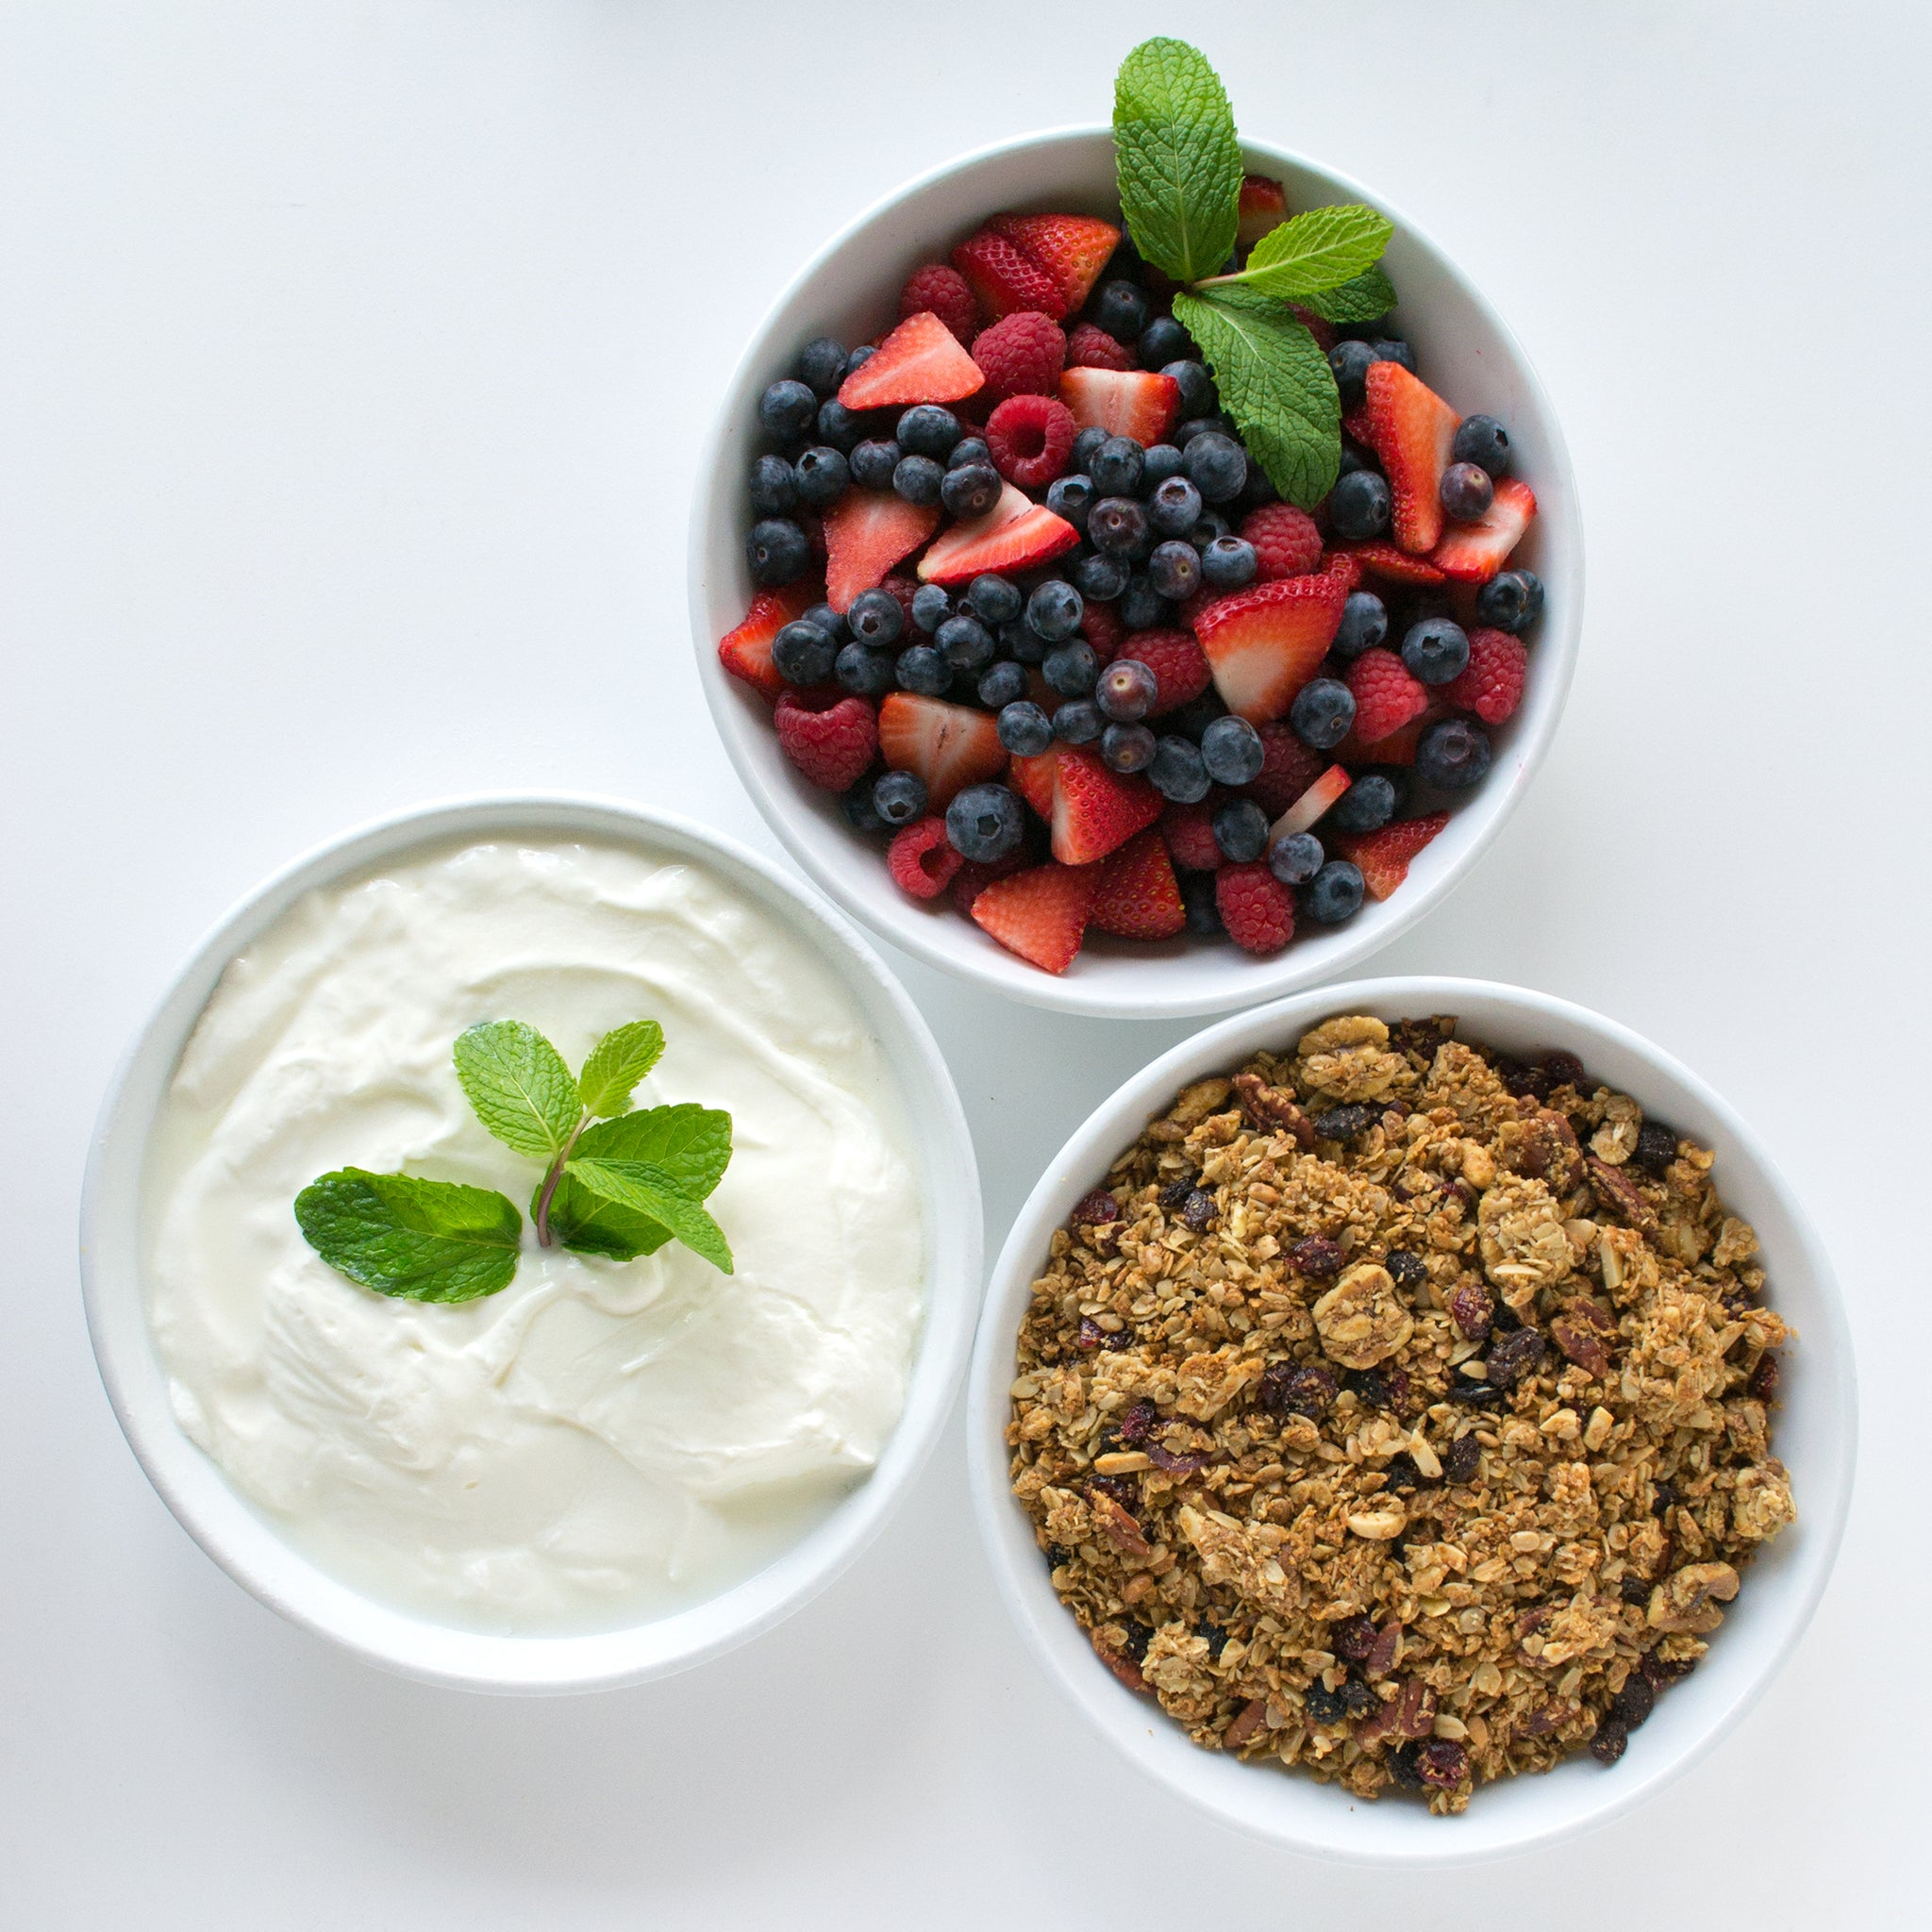 Granola & Yogurt with fresh Berries